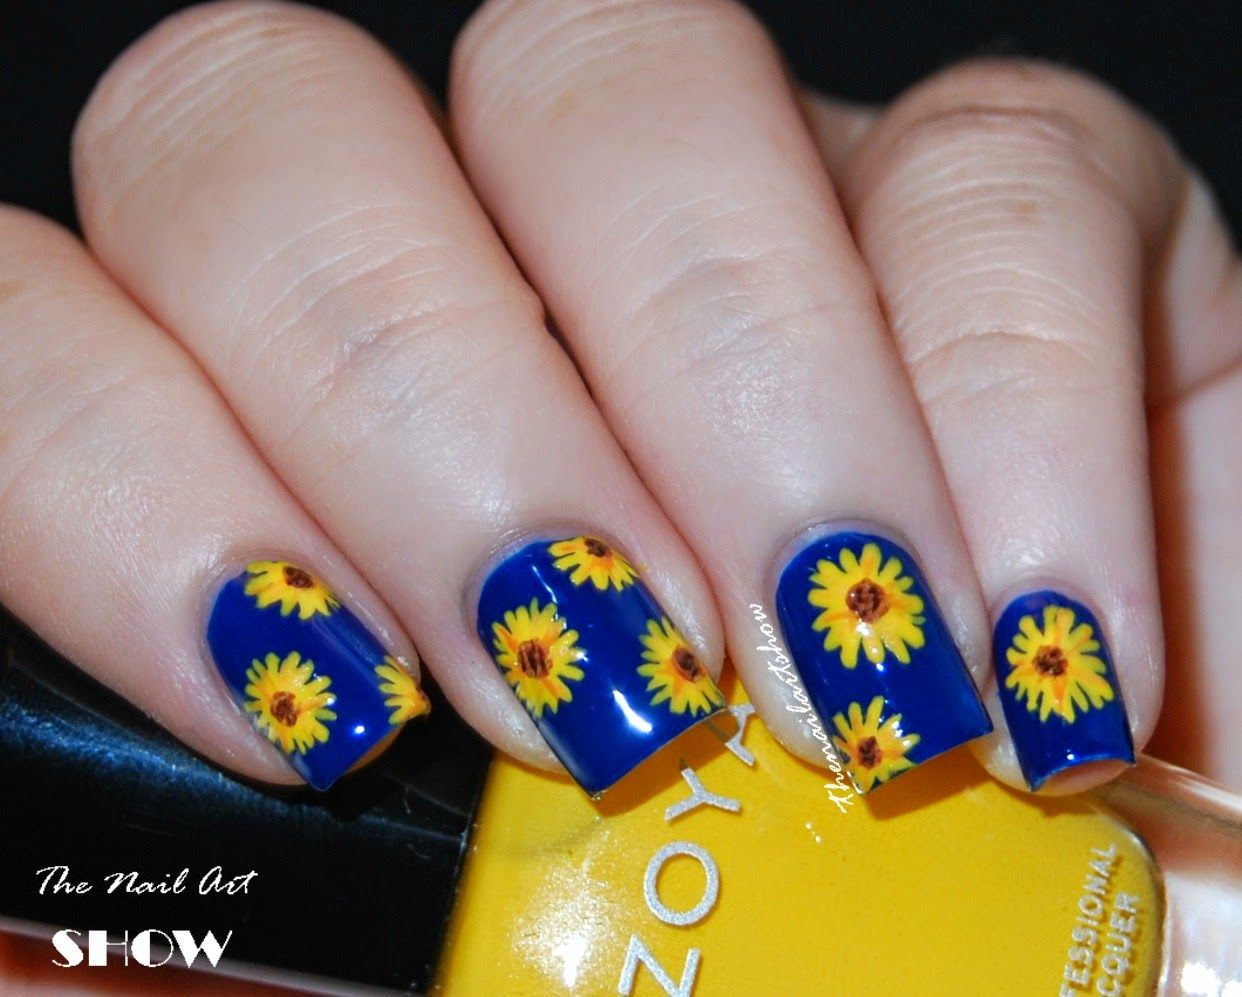 The Nail Art Show: The Flowers of the Sun - Acrylic Nail Art Designs Tumblr - Google Search Nailed It